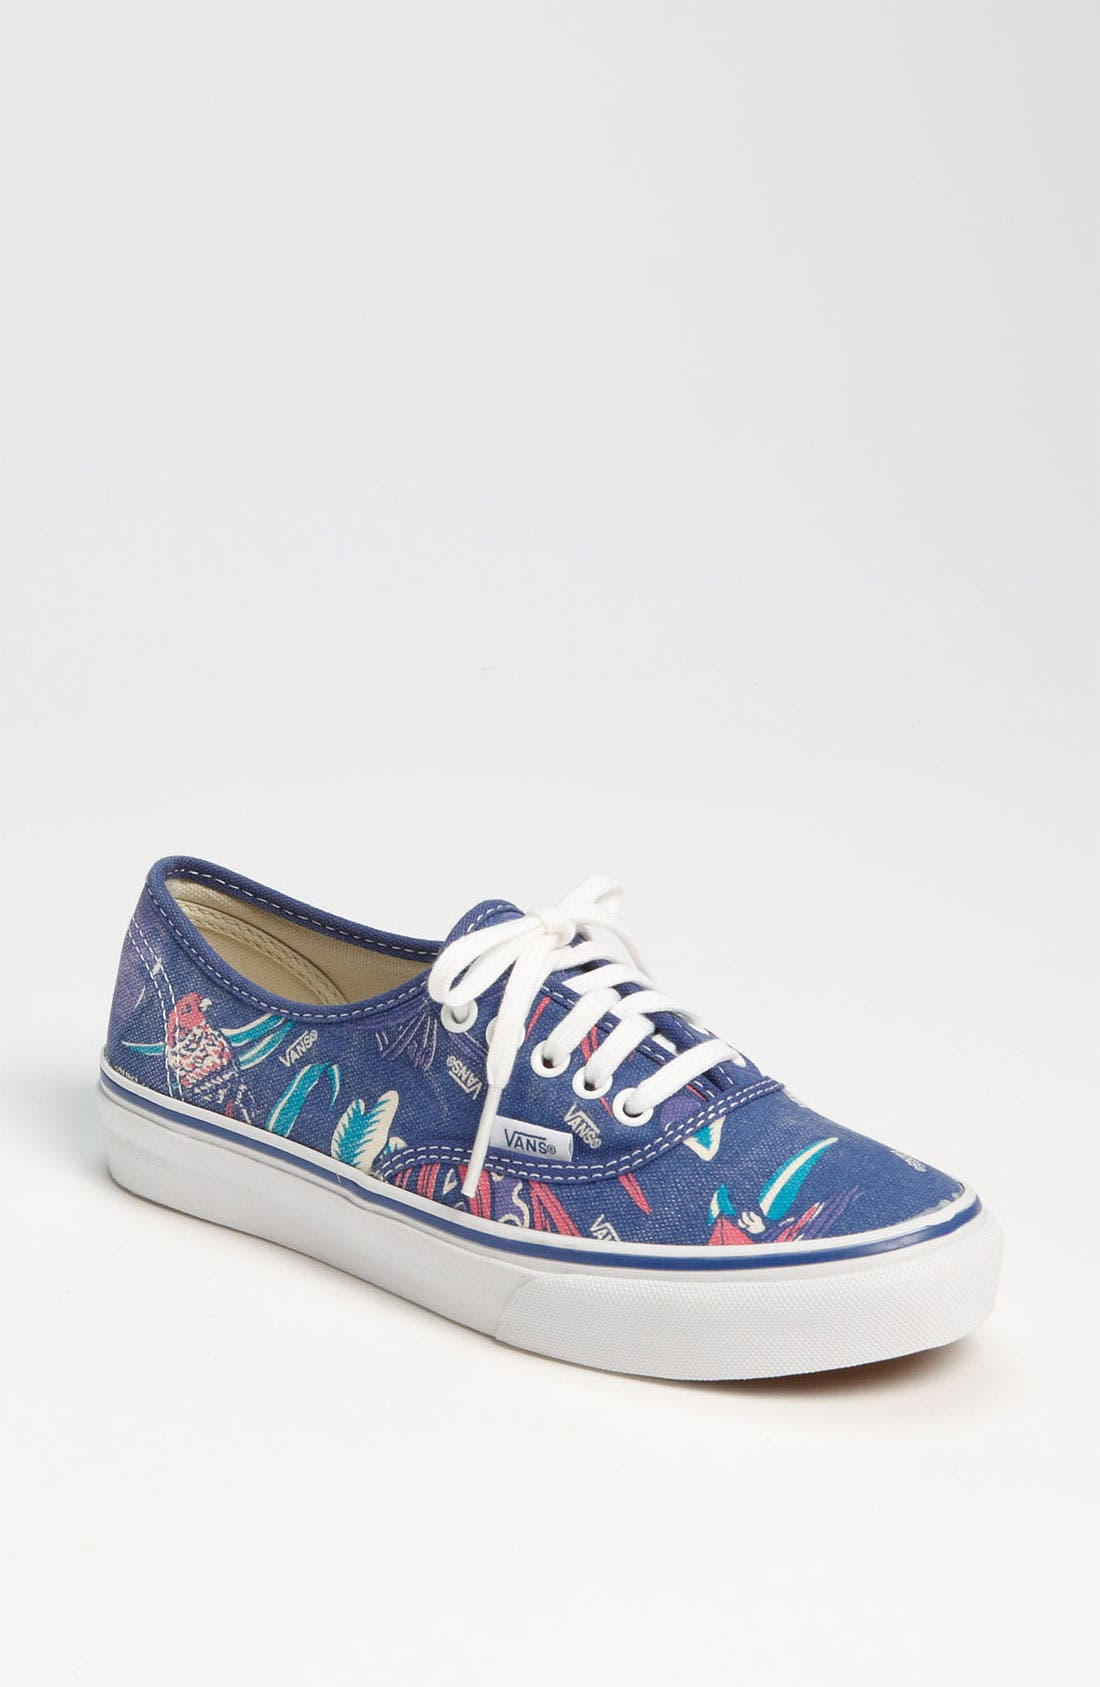 Alternate Image 1 Selected - Vans 'Authentic - Slim' Chambray Sneaker (Women)